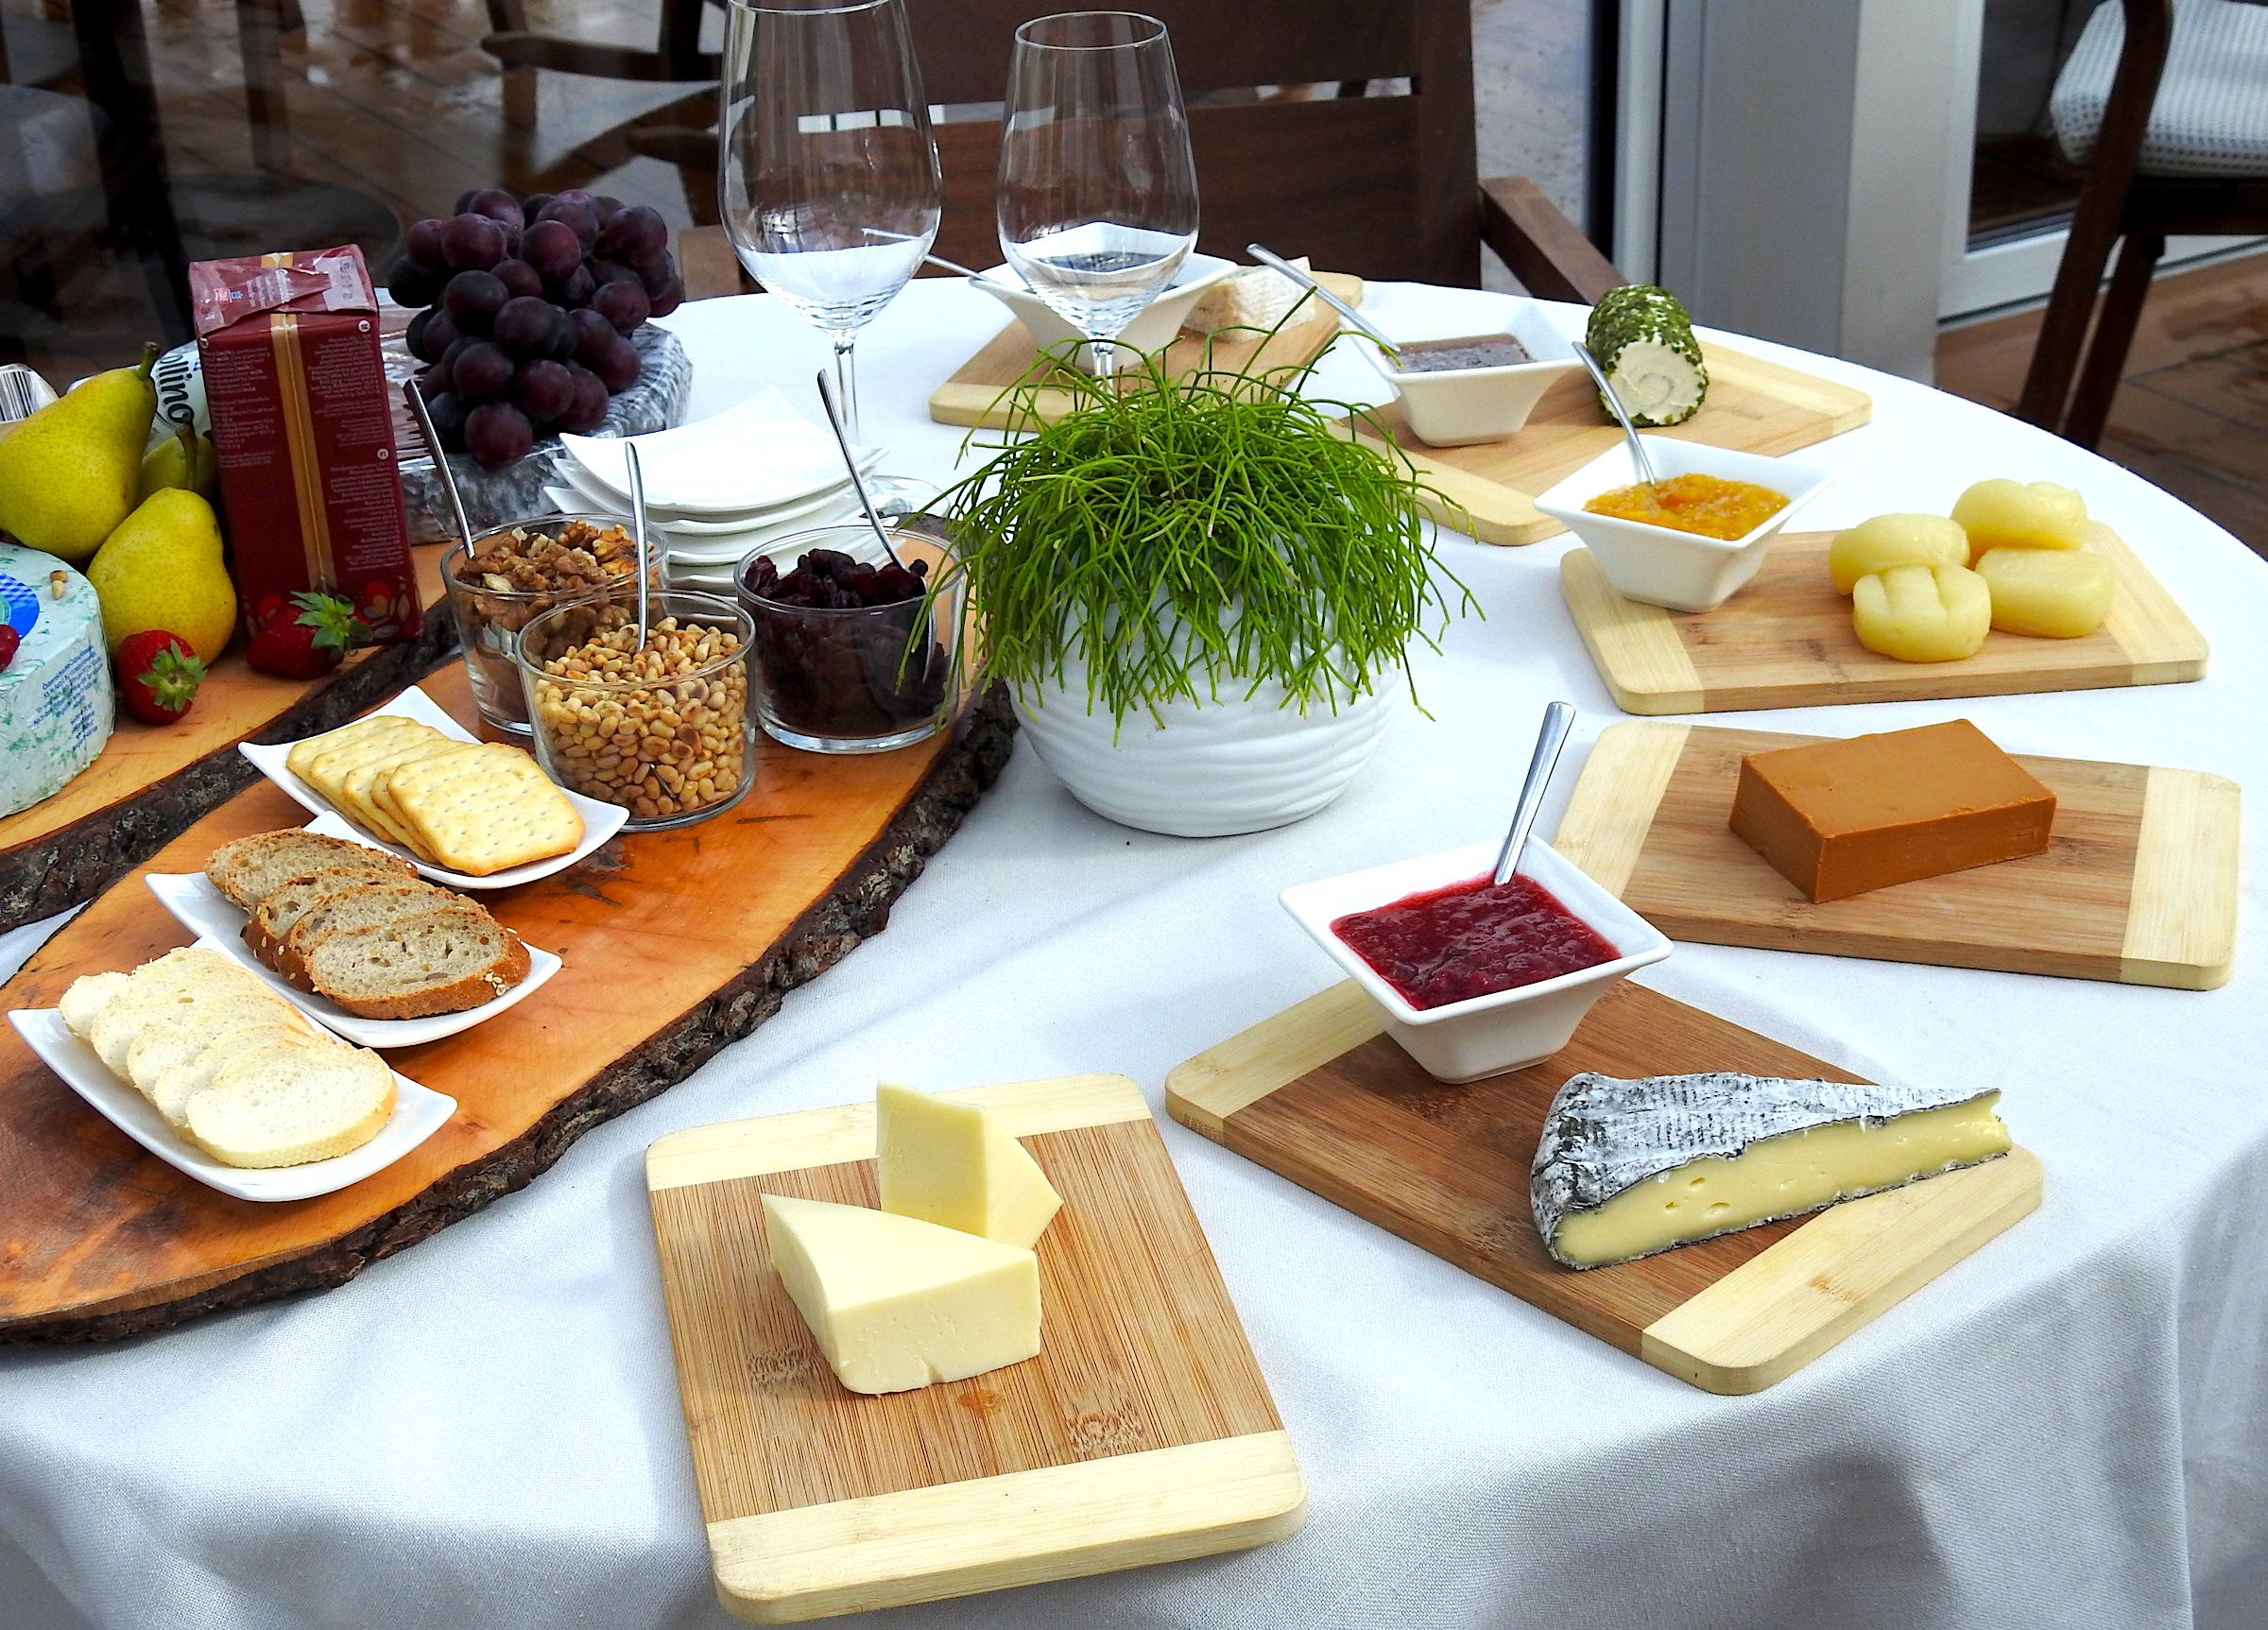 The splendid presentation of the cheeses.